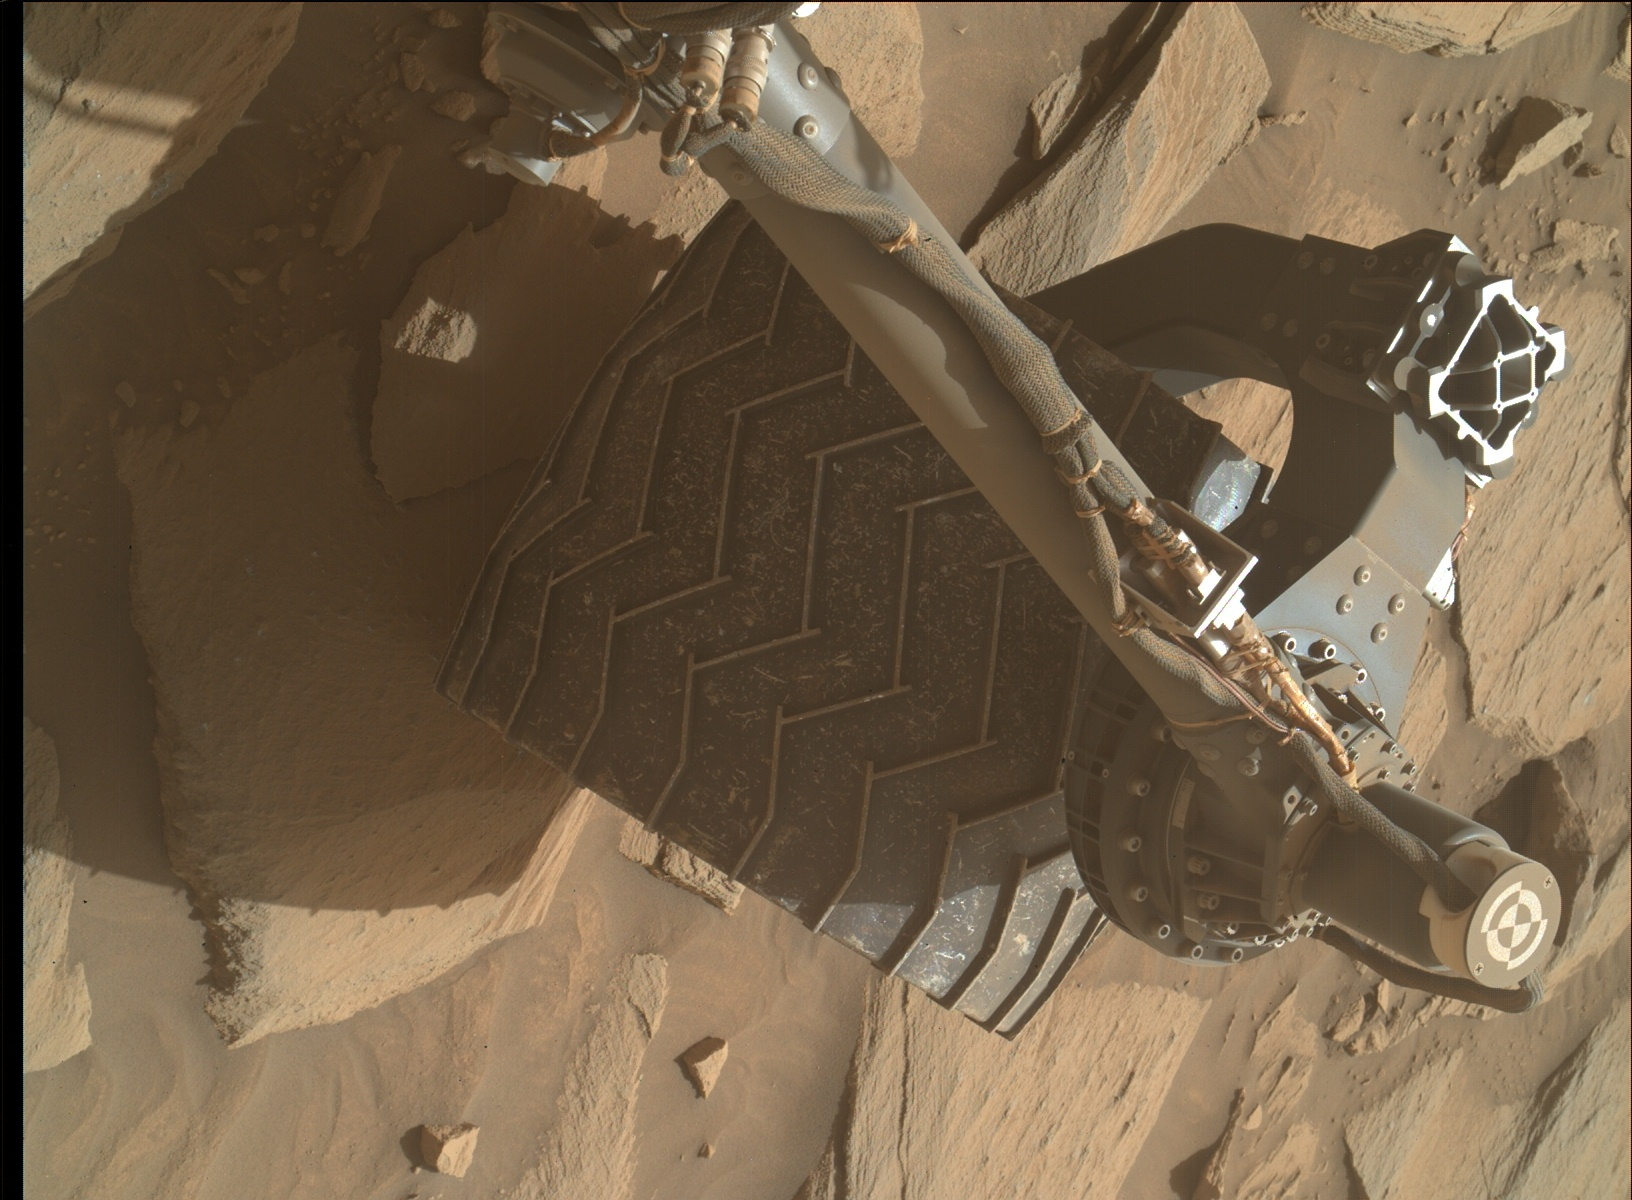 Nasa's Mars rover Curiosity acquired this image using its Mars Hand Lens Imager (MAHLI) on Sol 2732